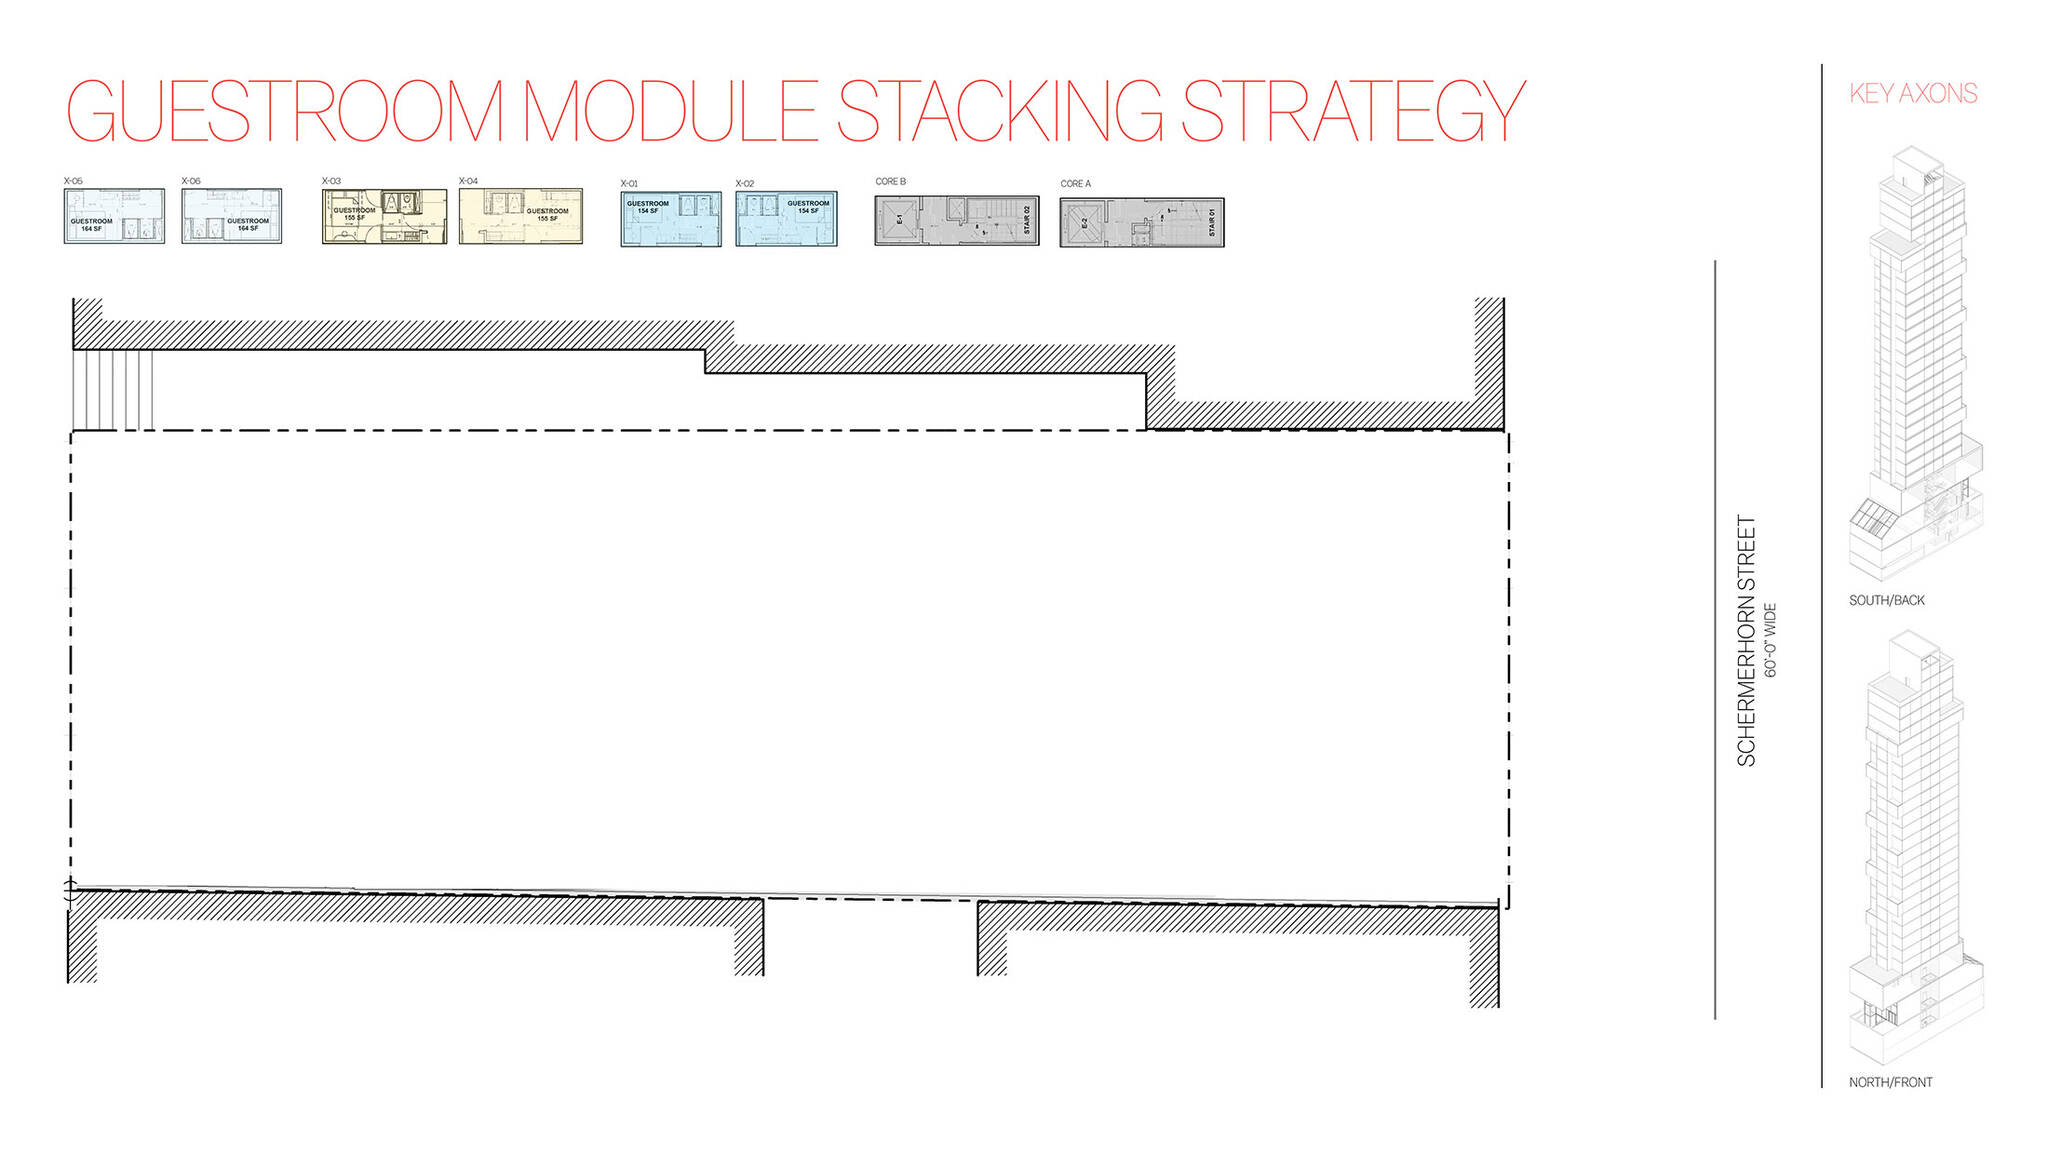 Guestroom module stacking strategy of the Brooklyn Motto Hotel project, a modular hotel tower on Schermerhorn Street in Brooklyn, New York designed by the architecture studio Danny Forster & Architecture